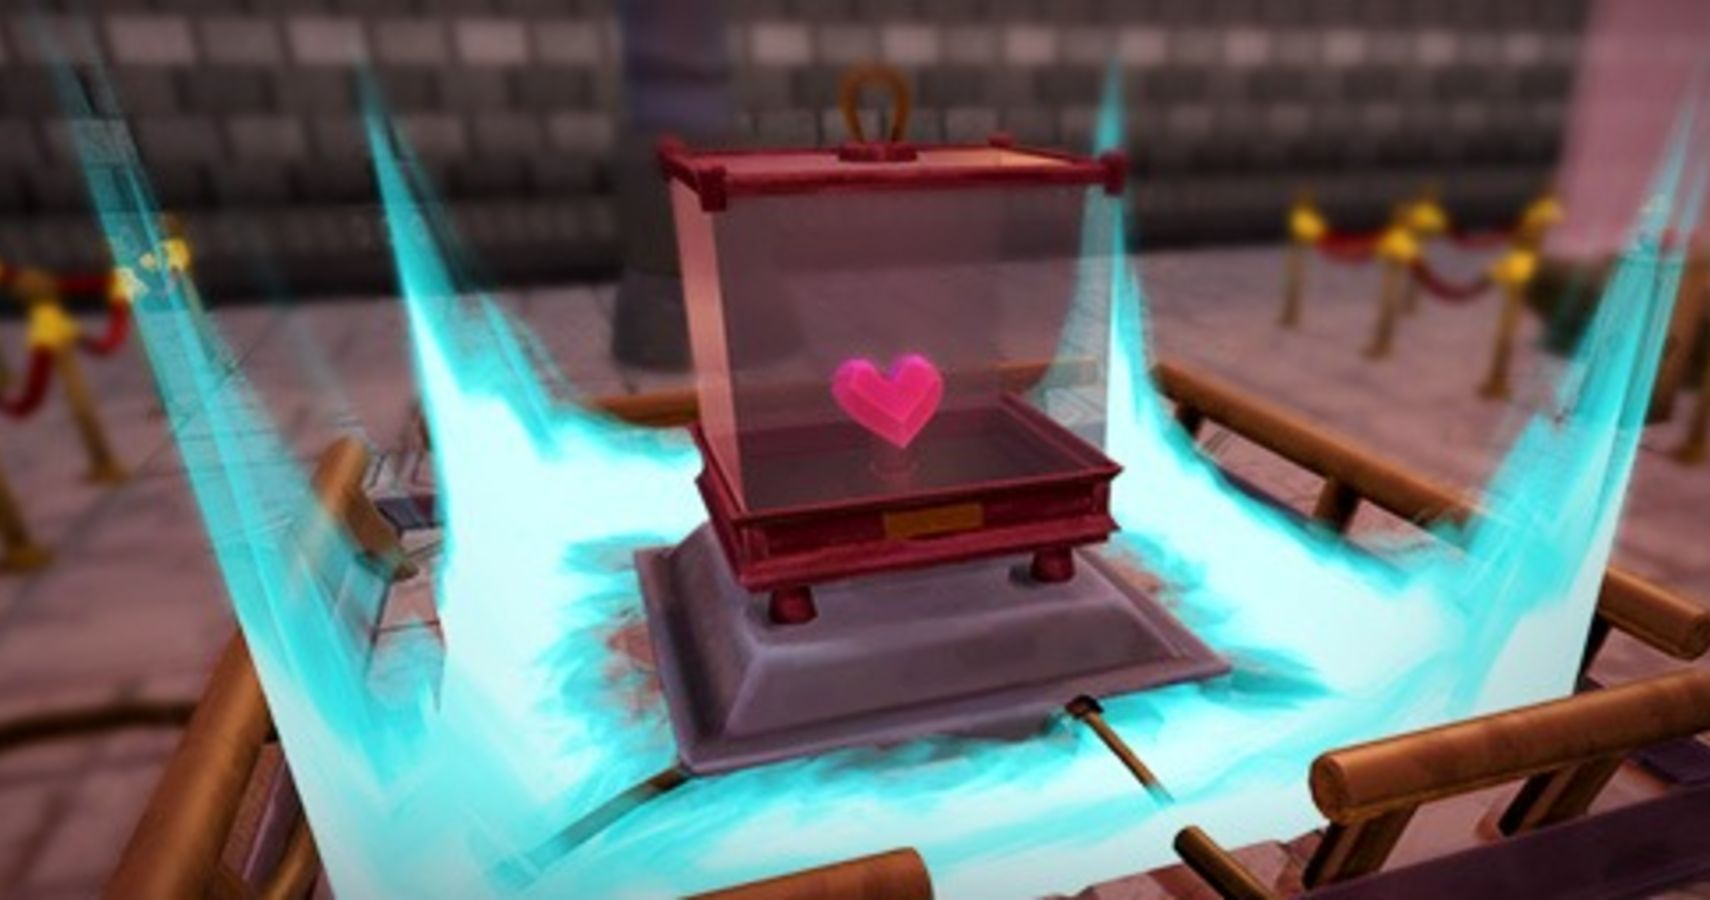 RuneScape Adds New Heartstealer Quest For Valentine's Day, Double XP Event Starts Next Week